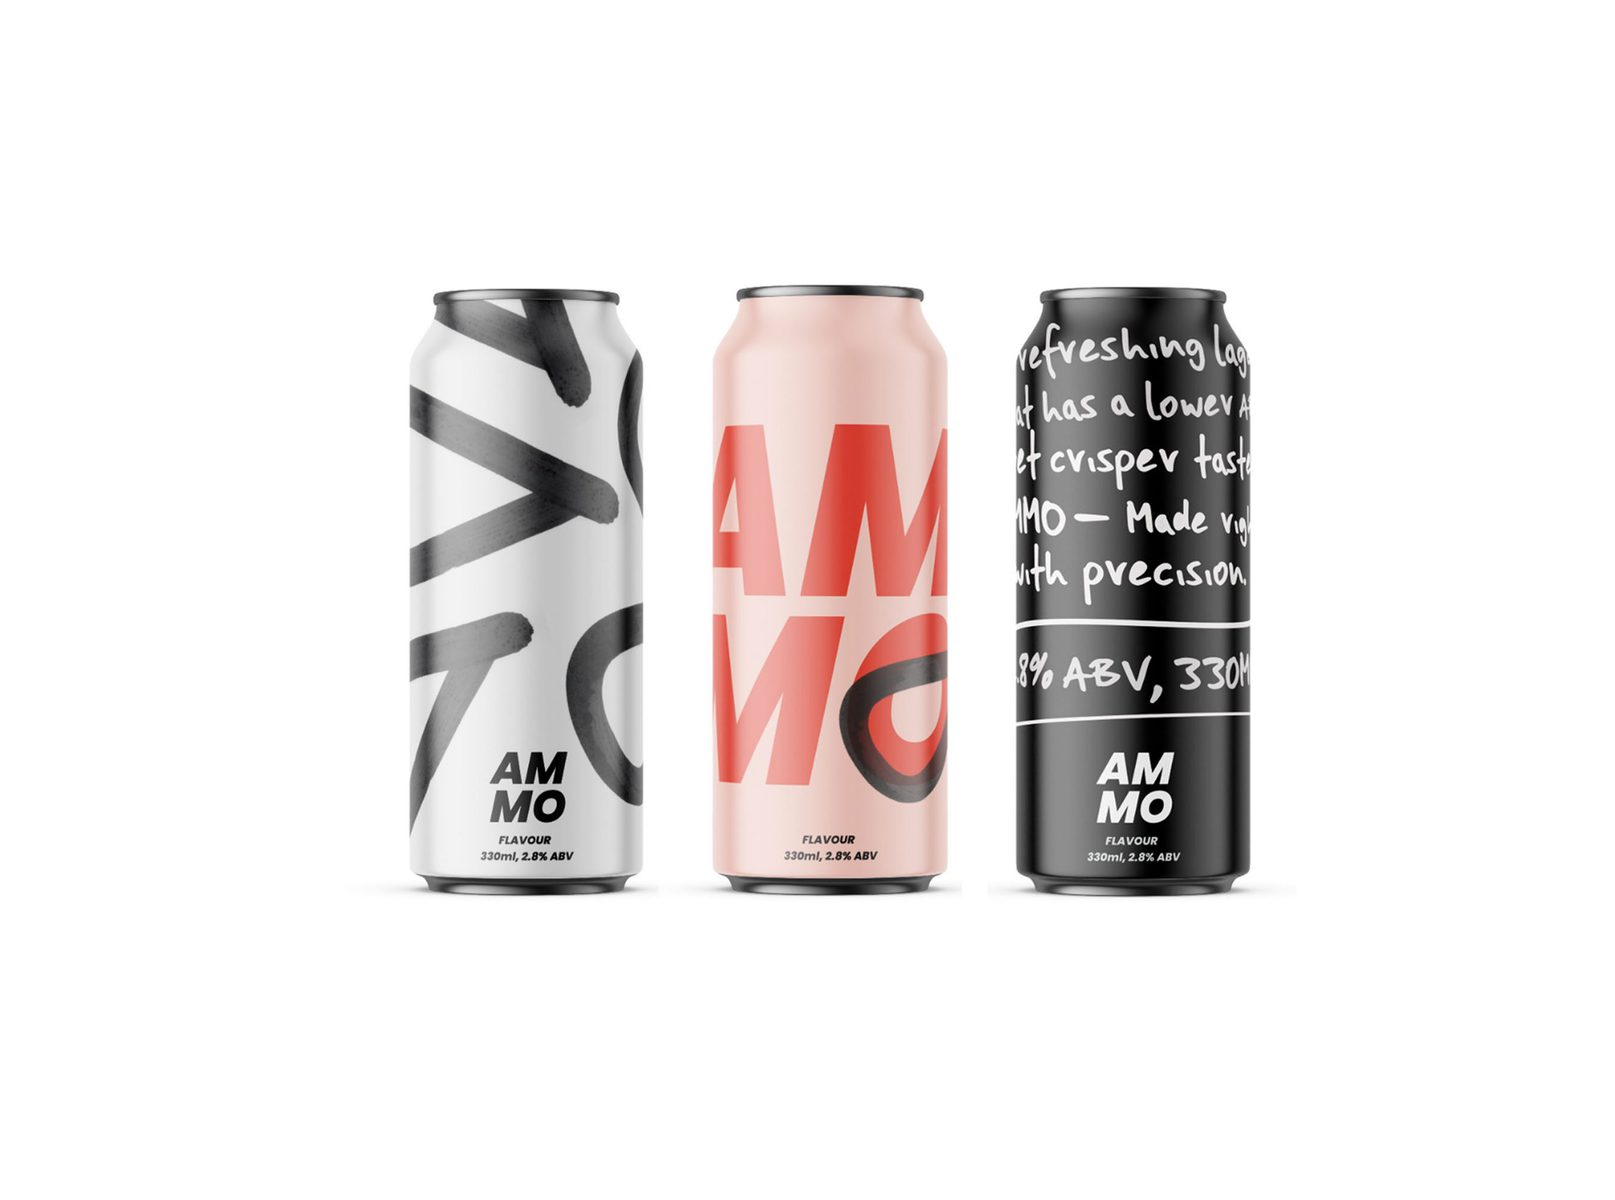 Ammo Craft Beer Branding and Identity by Hannah Tempany, Swinburne University Of Technology